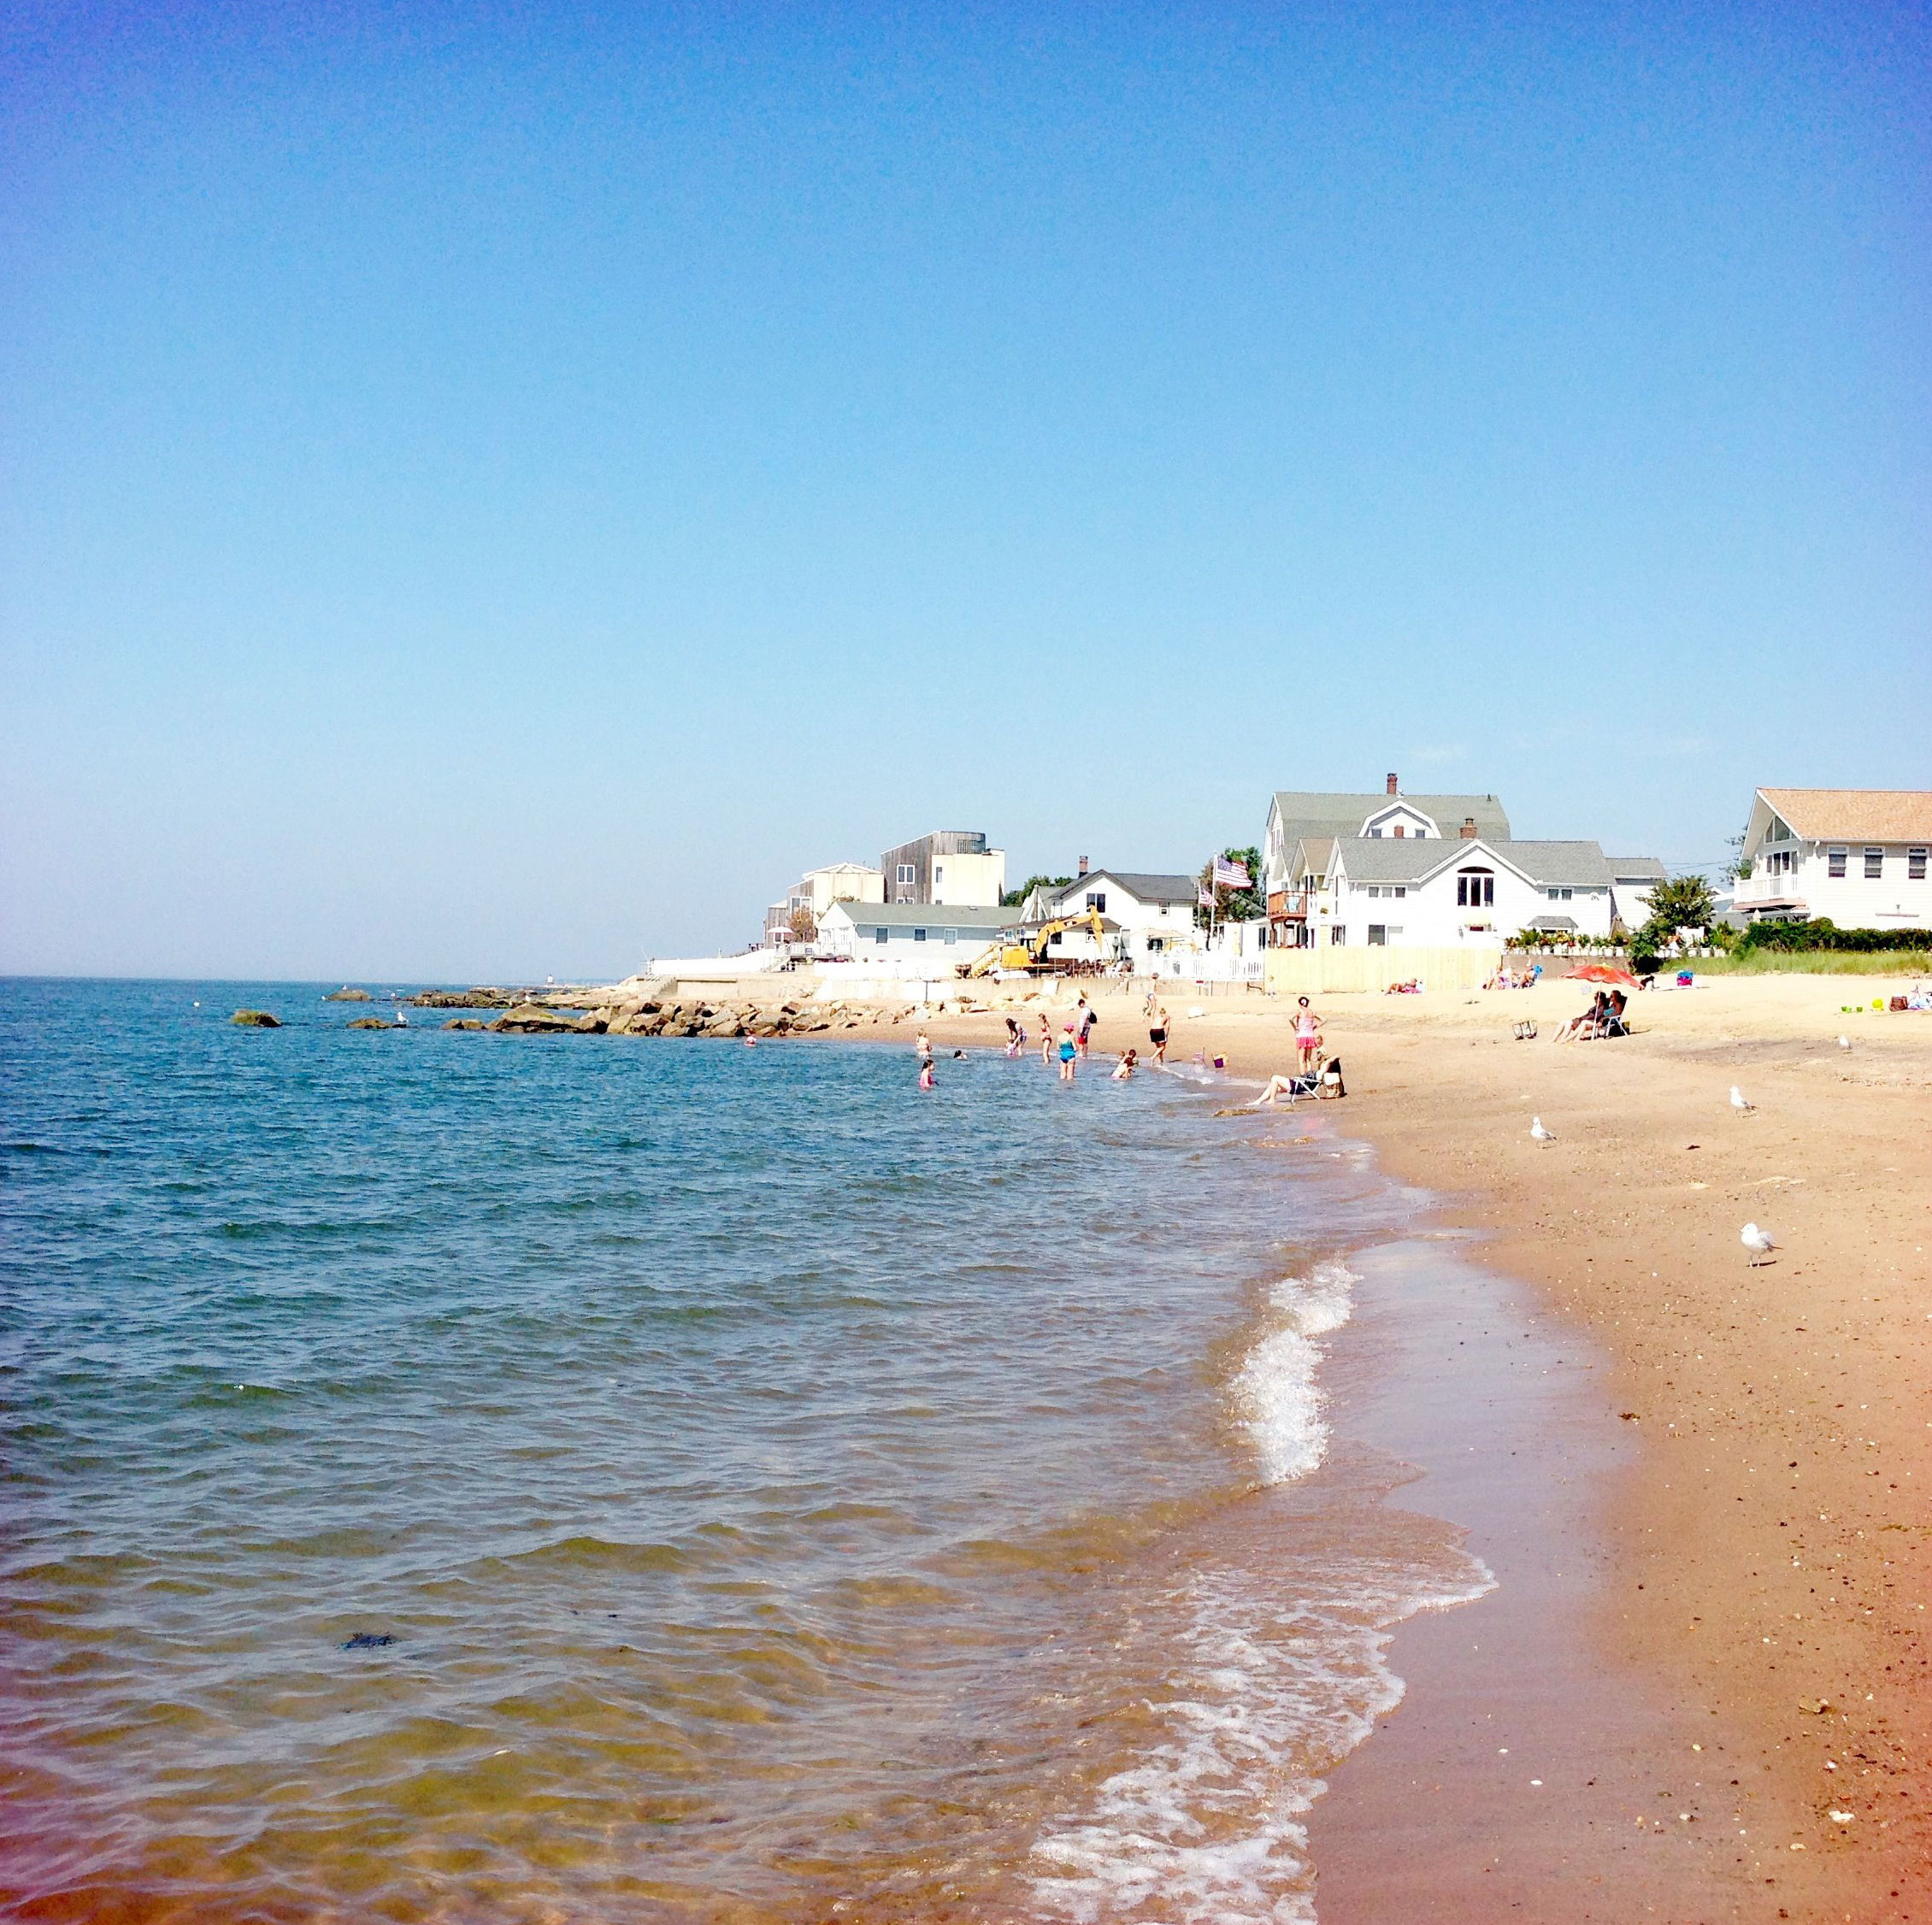 Beaches in Connecticut